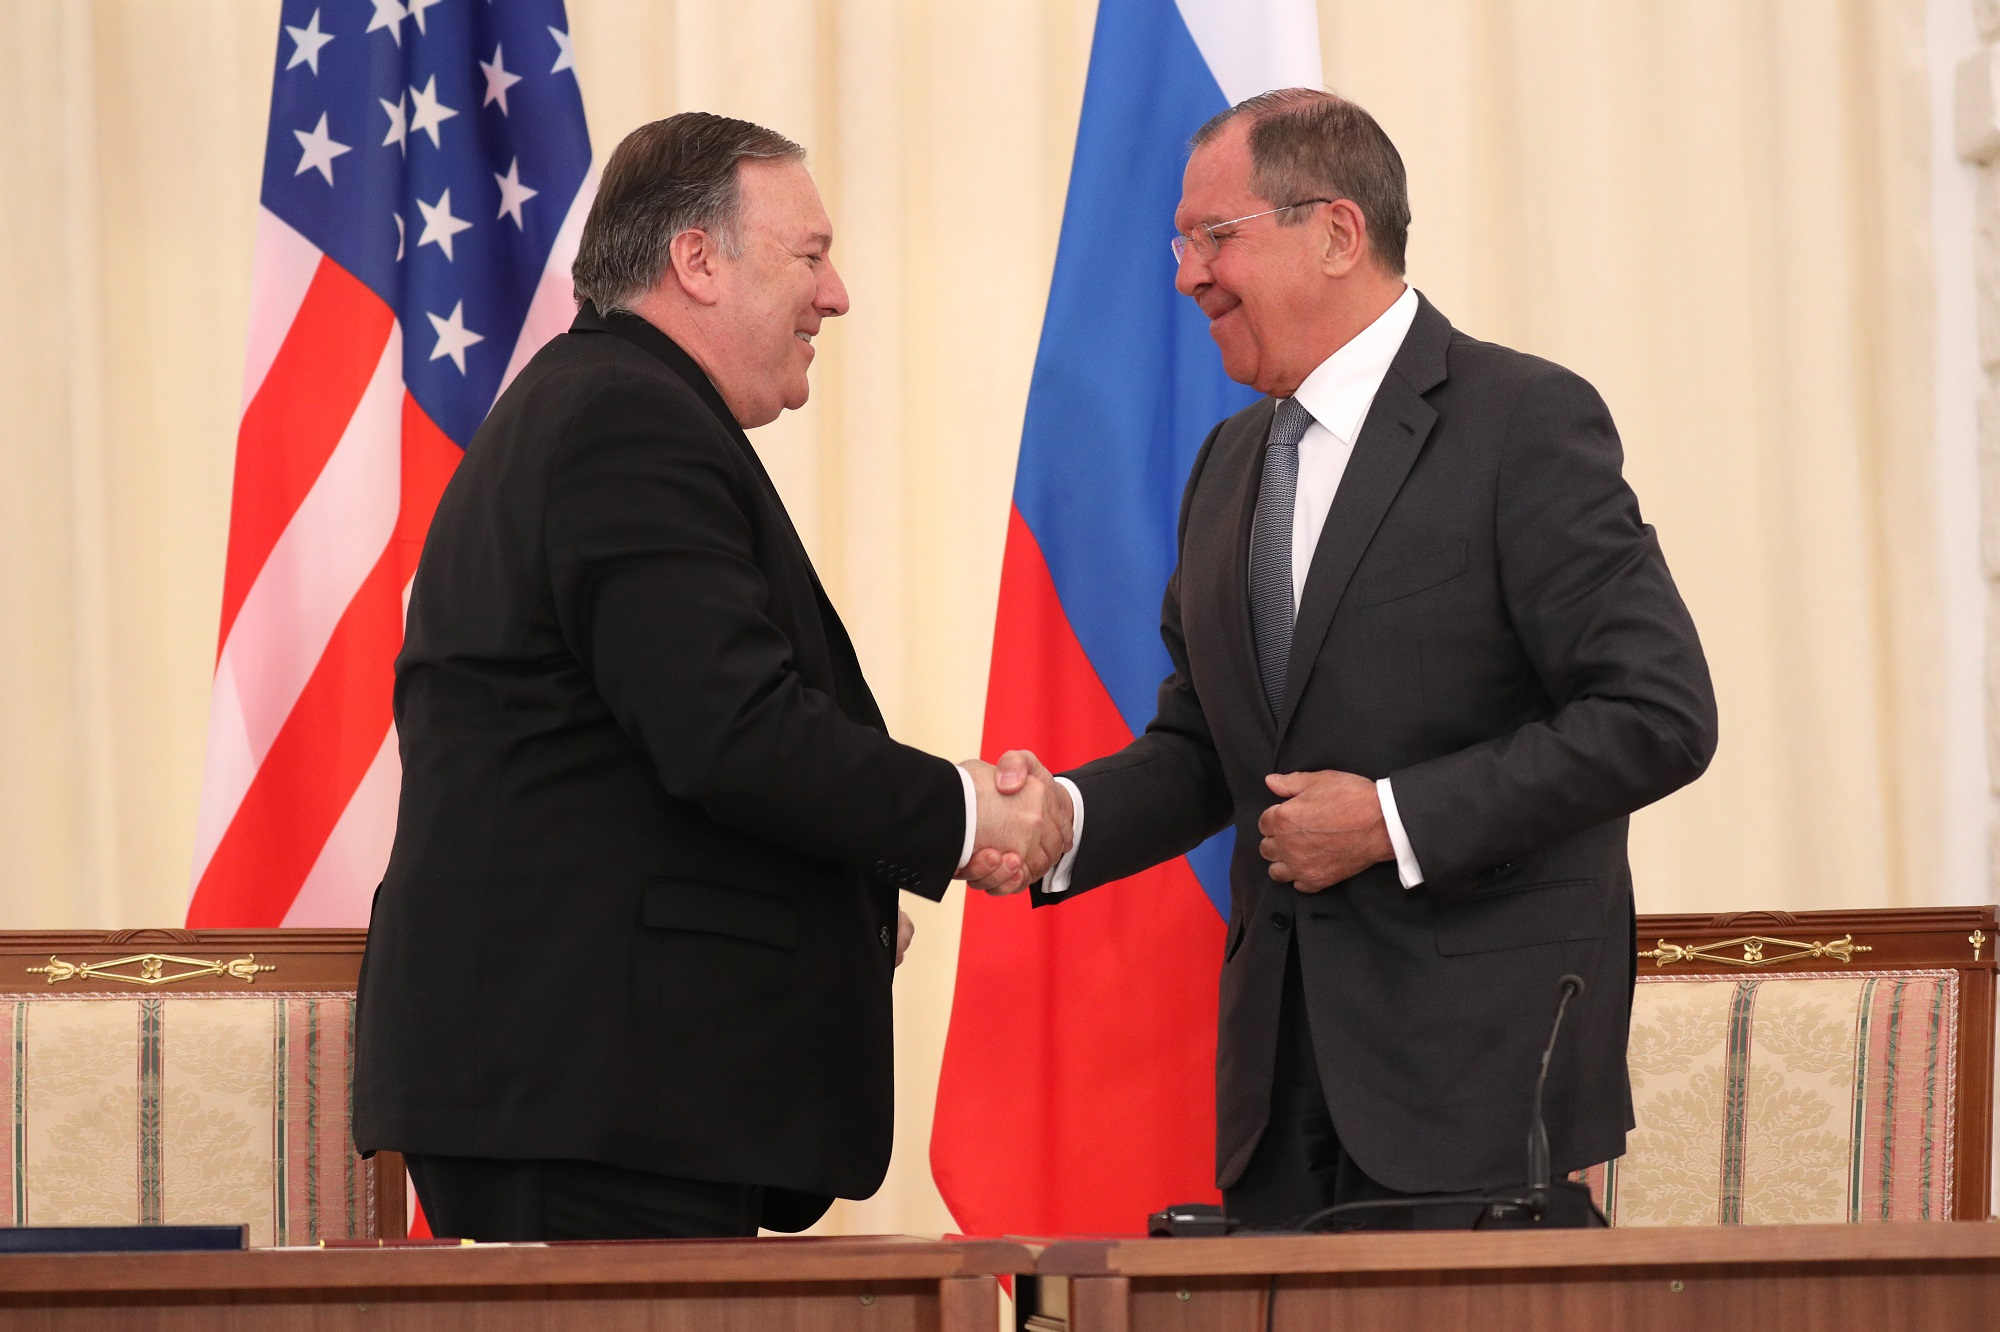 A photograph of Foreign Minister Sergey Lavrov's remarks and answers to media questions at a joint news conference following talks with US Secretary of State Mike Pompeo, Sochi, May 14, 2019.